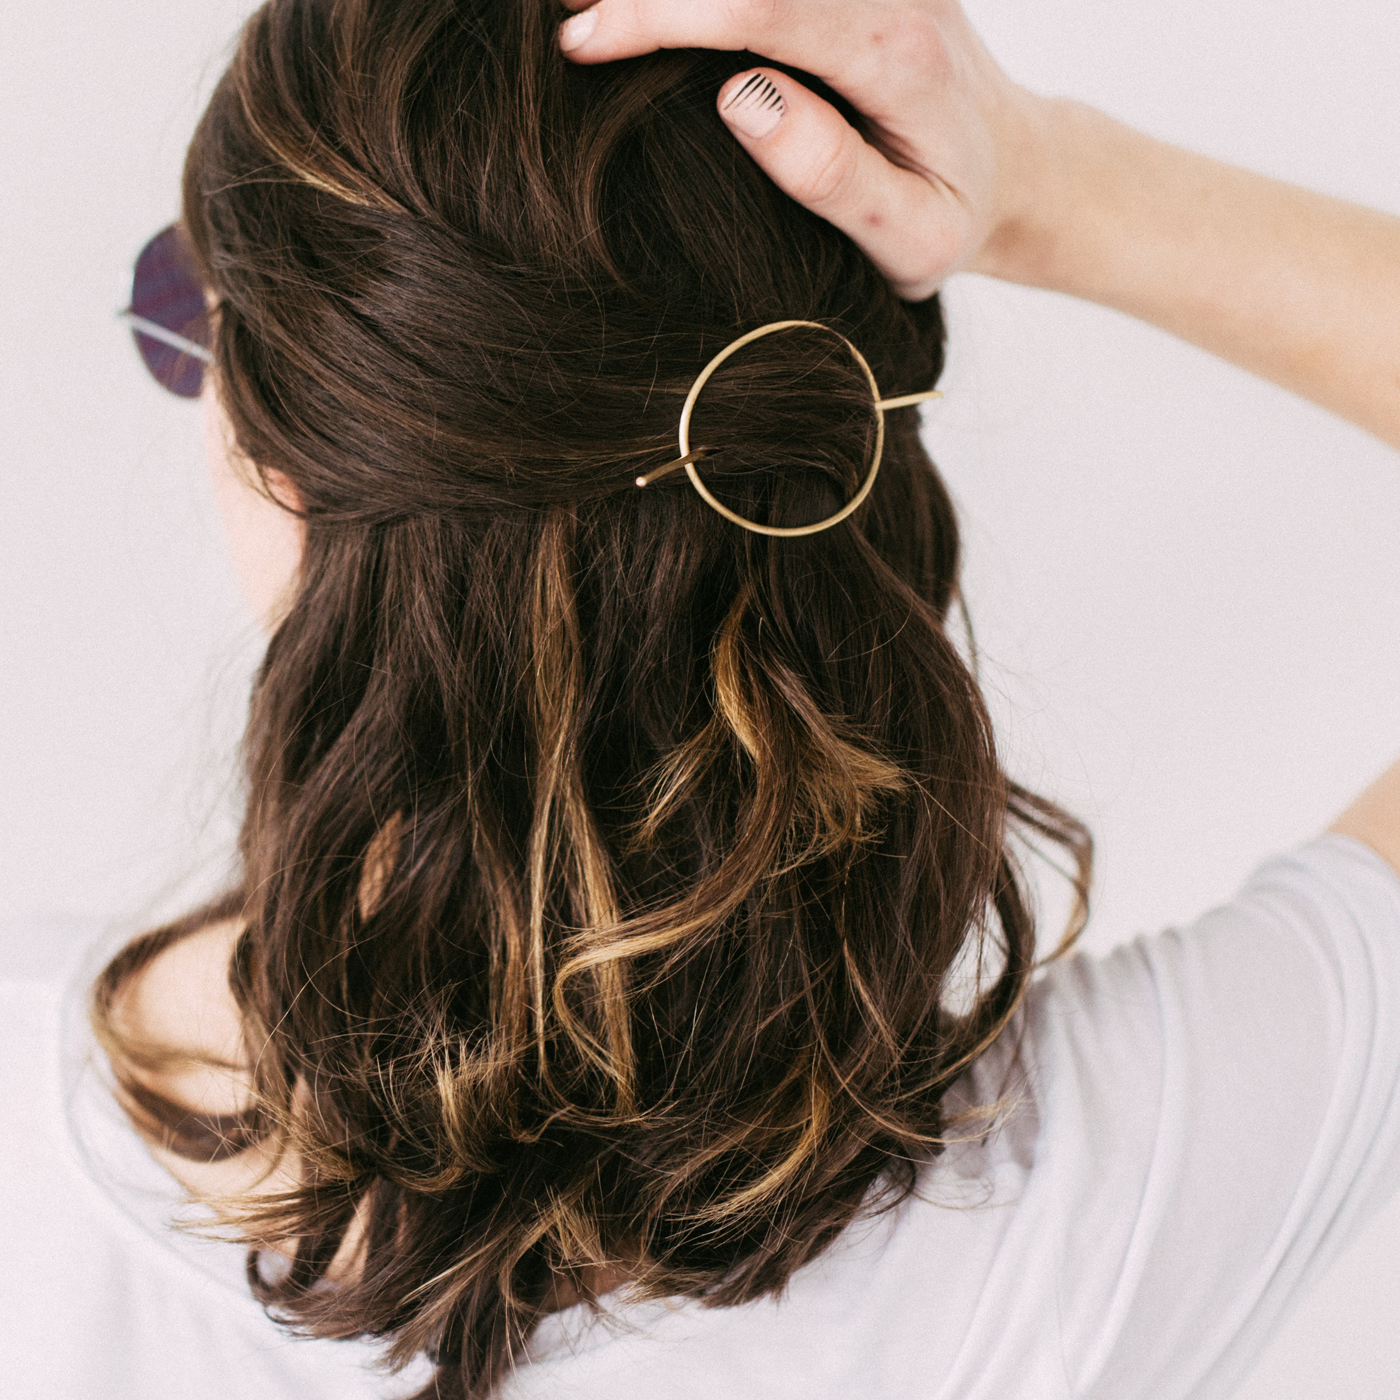 Hair pins for the summer days ahead - Our goal this summer is to provide you with pretty options to keep your hair out of your face without resorting to a ponytail.